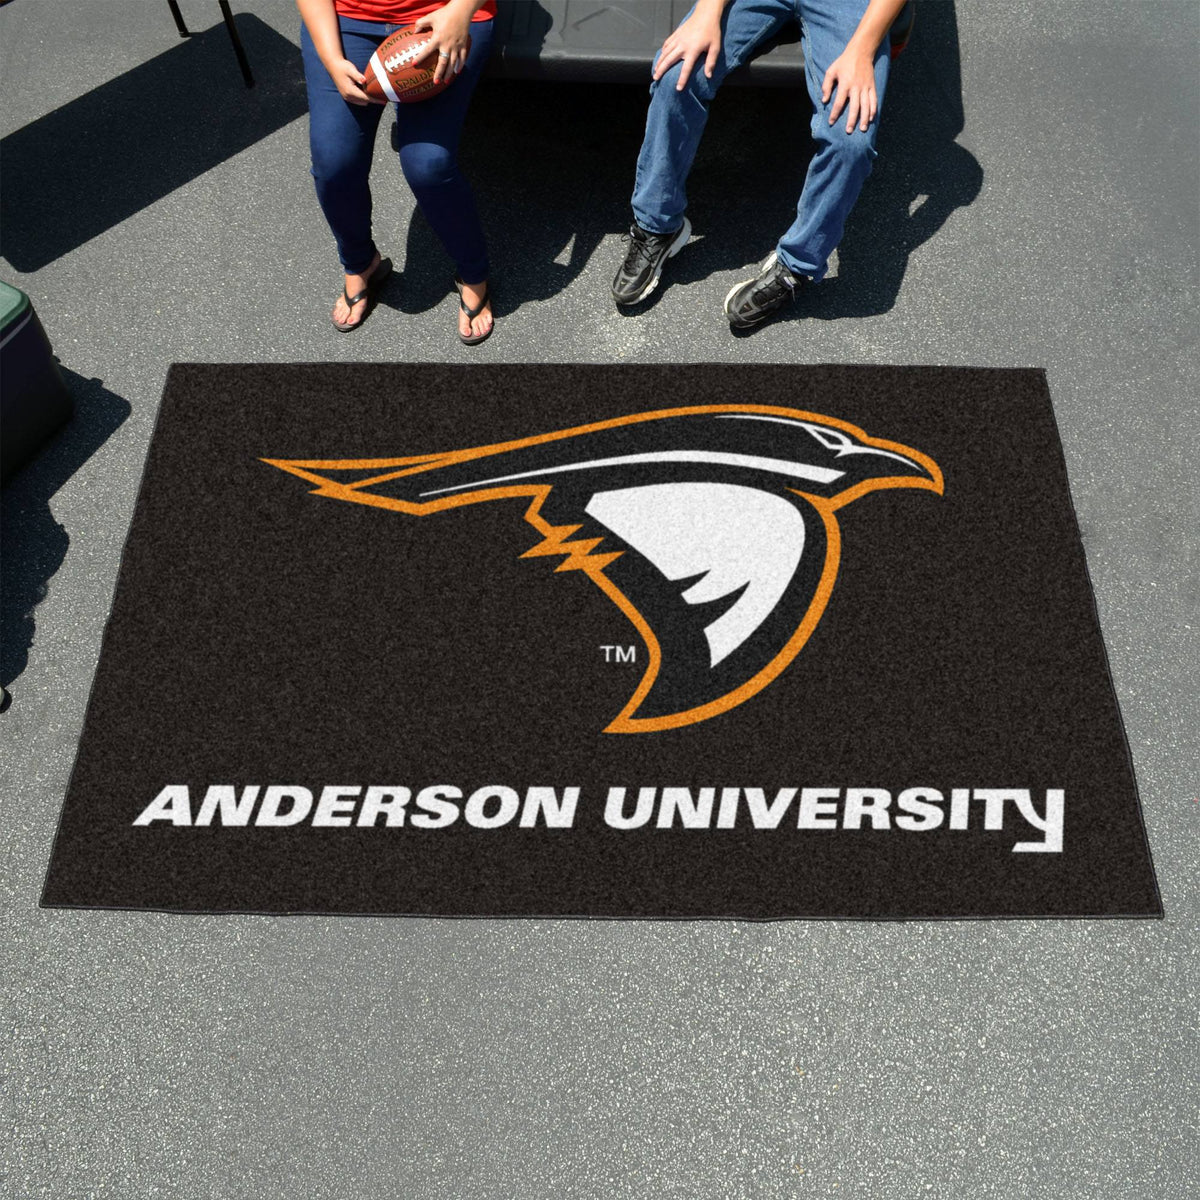 Collegiate - Ulti-Mat: A - L Collegiate Mats, Rectangular Mats, Ulti-Mat, Collegiate, Home Fan Mats Anderson (IN)